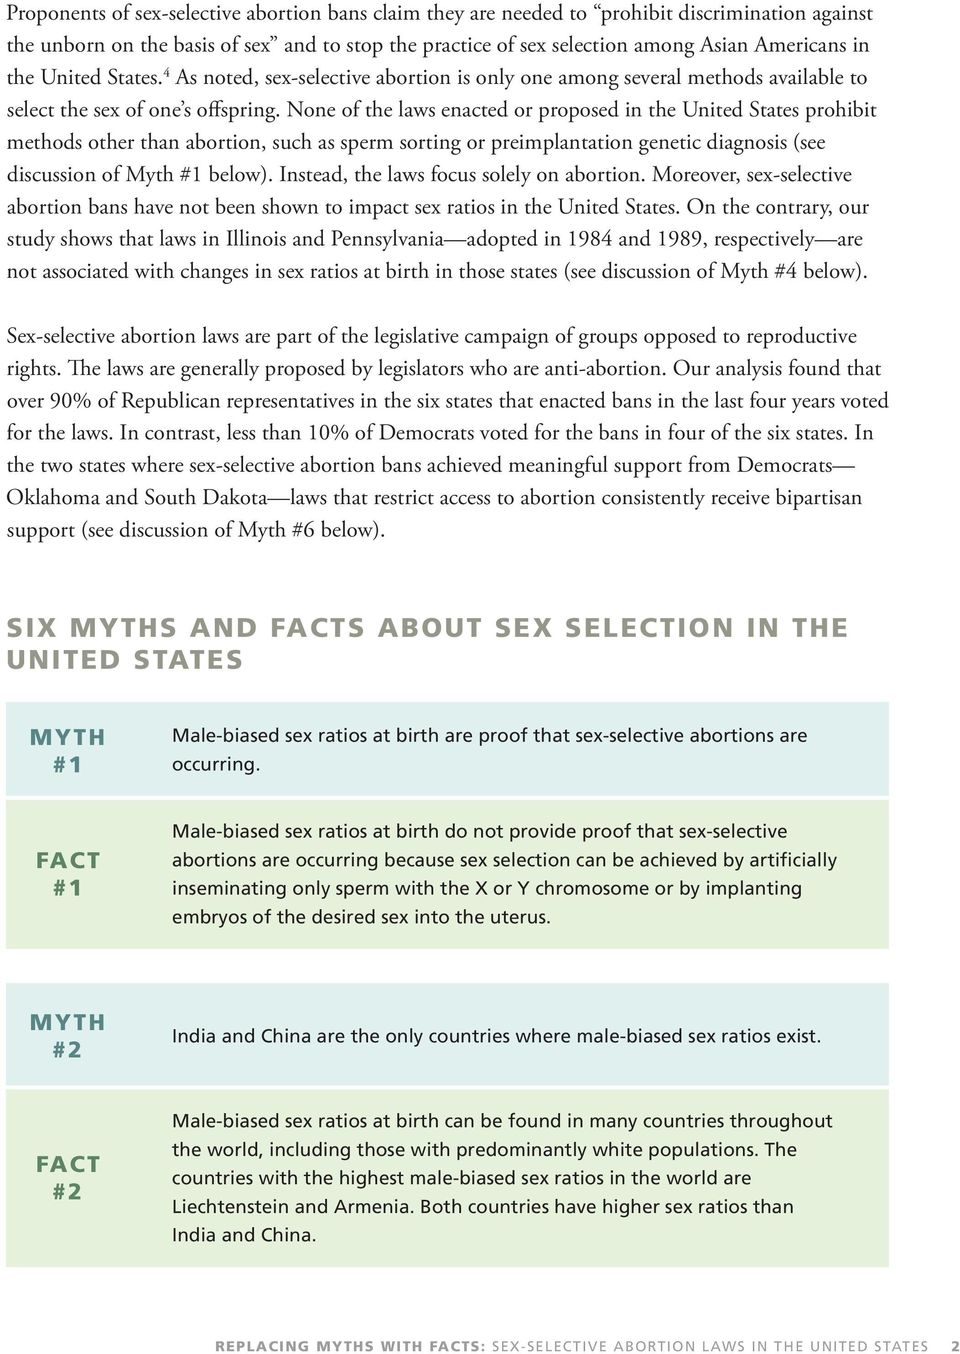 None of the laws enacted or proposed in the United States prohibit methods other than abortion, such as sperm sorting or preimplantation genetic diagnosis (see discussion of Myth #1 below).